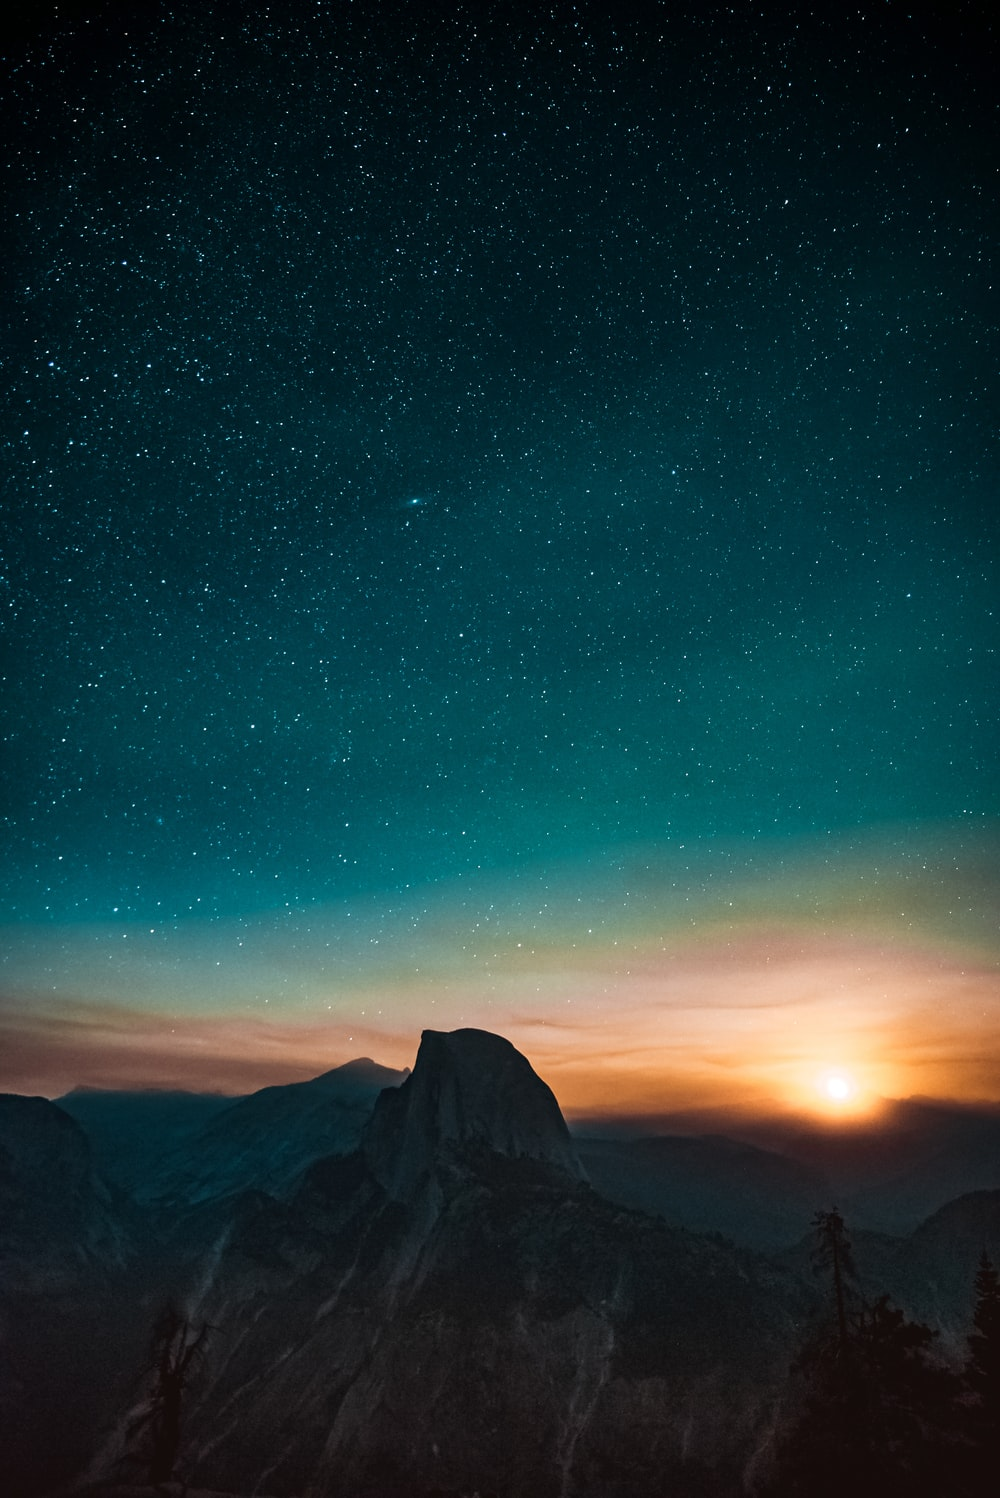 Galaxy Wallpapers Free HD Download [500 HQ]